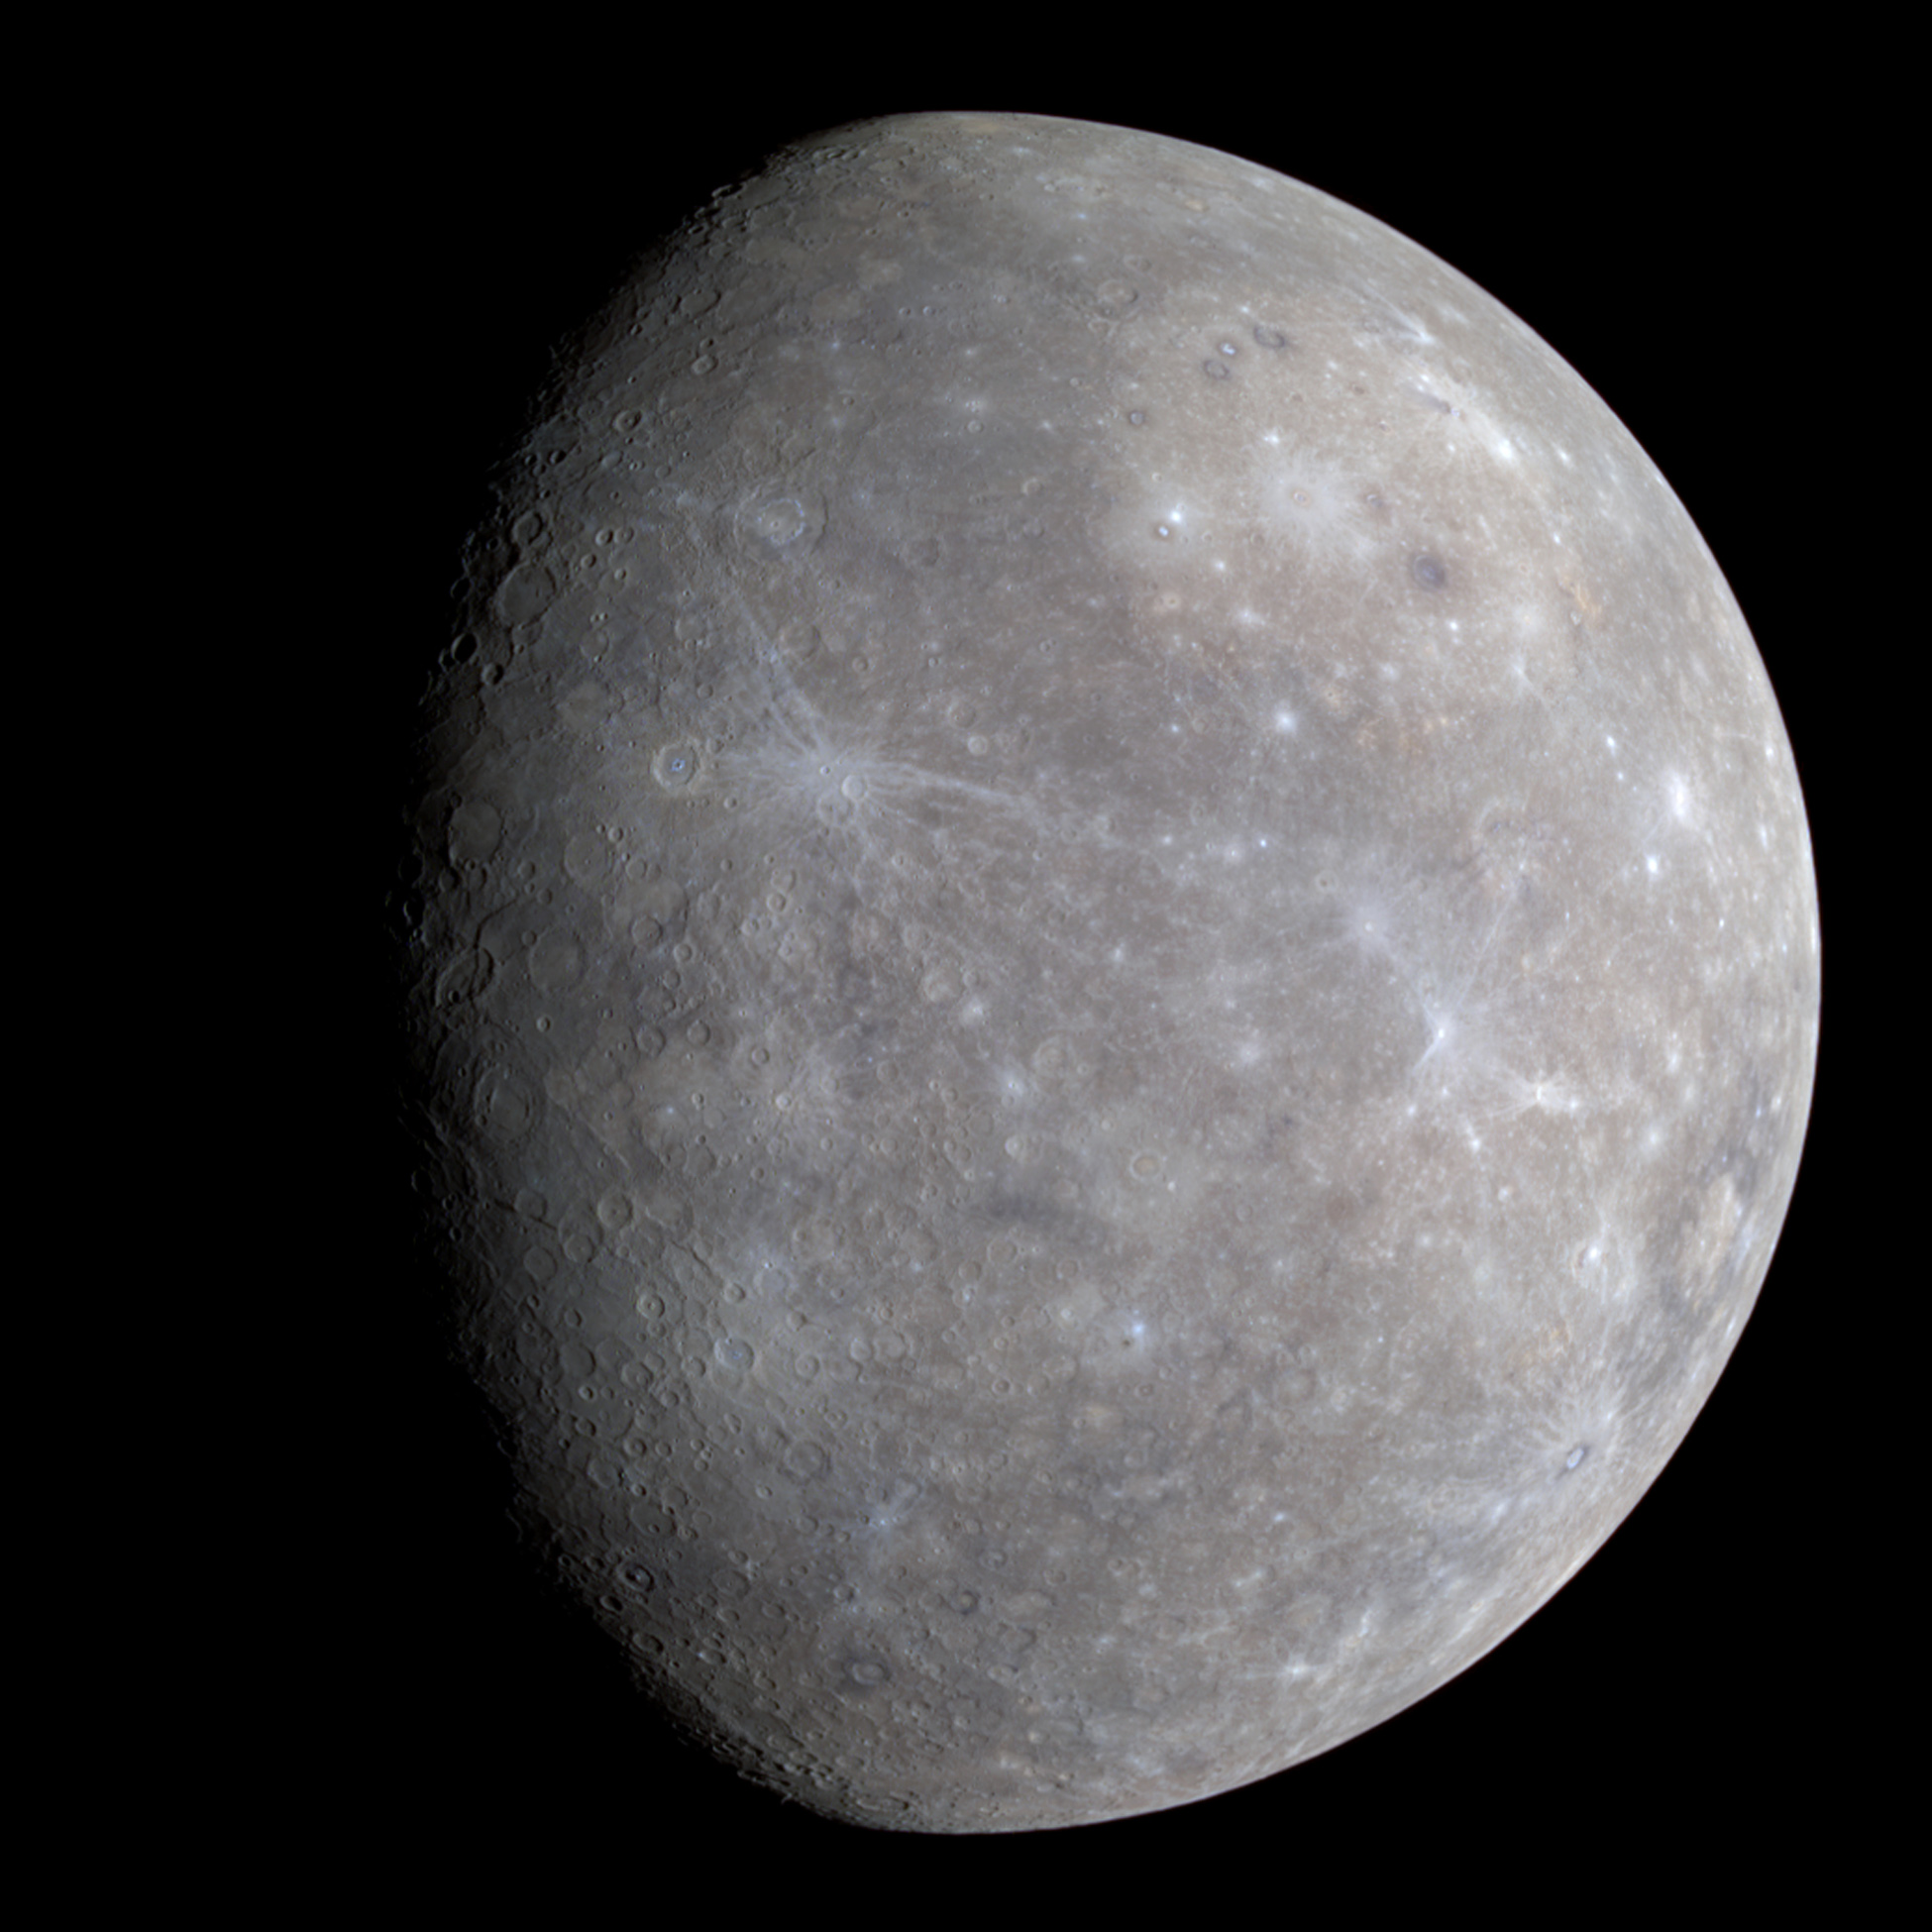 A new large valley on Mercury that may be the first evidence of buckling of the planet's outer silicate shell in response to global contraction, a new study finds.